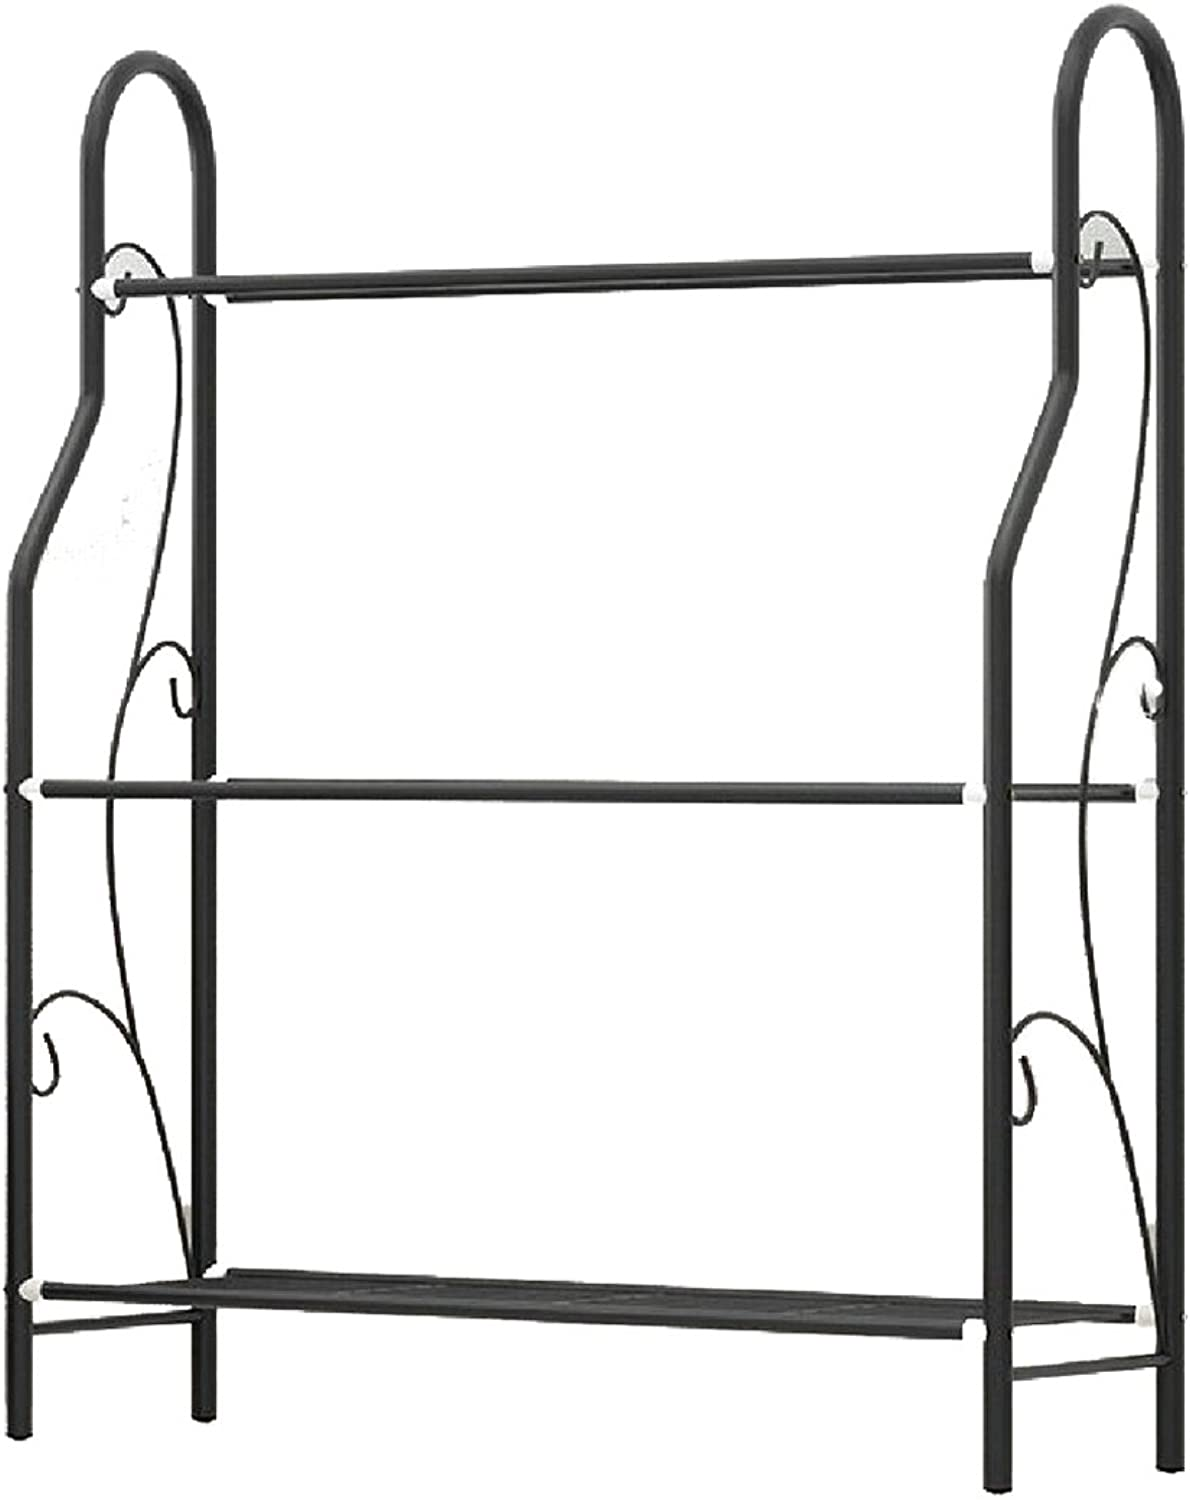 SportsX Shelving Unit Stackable Storage General Wide Open Turn-N-Tube 3-Tier Designs Ledge Shelf Black 3 Shelves